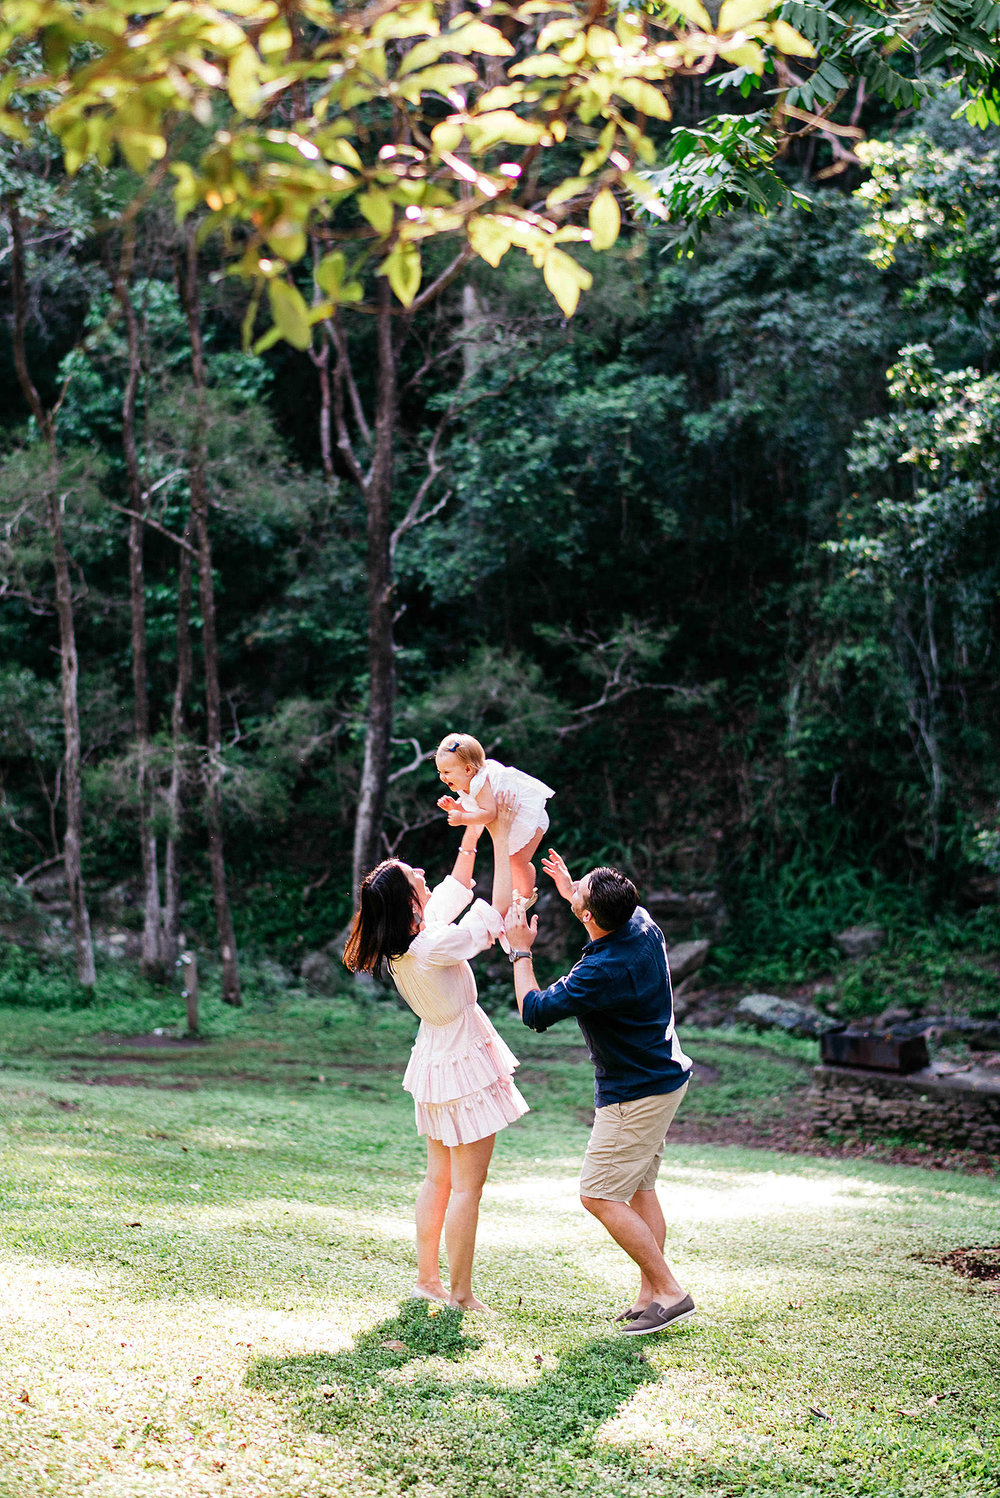 brisbane-family-portrait-photographer-09.jpg